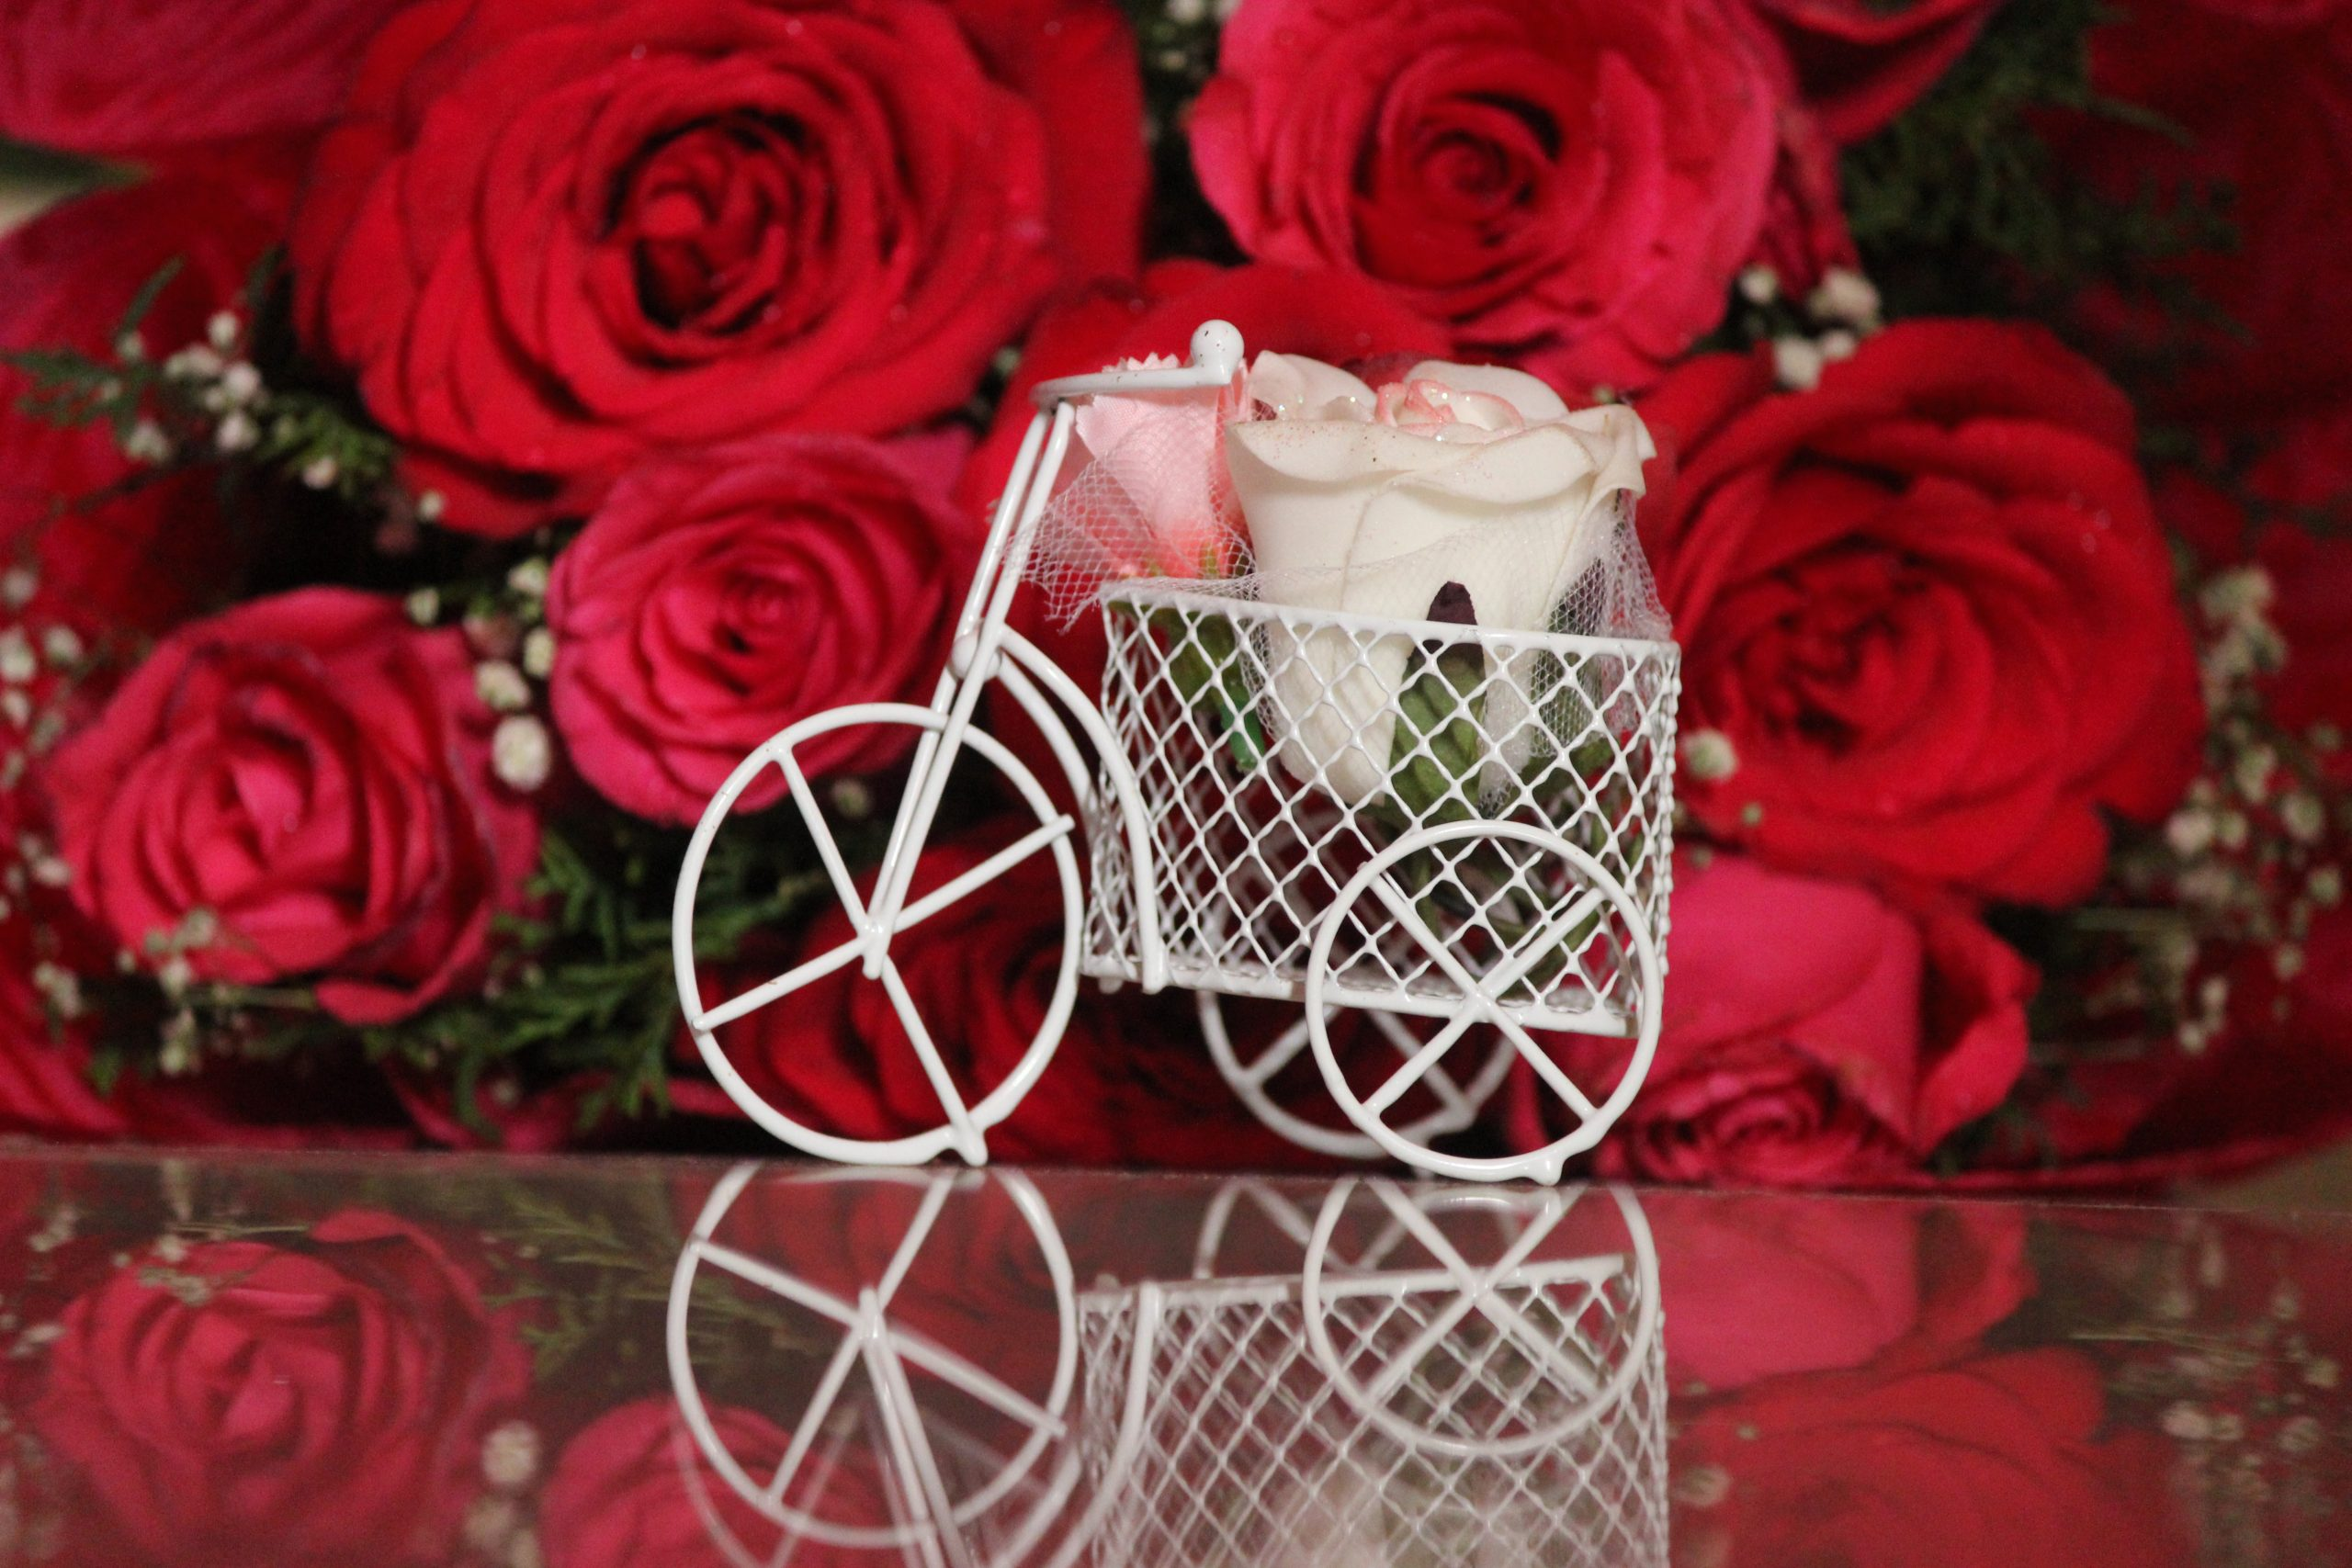 Small bicycle and roses